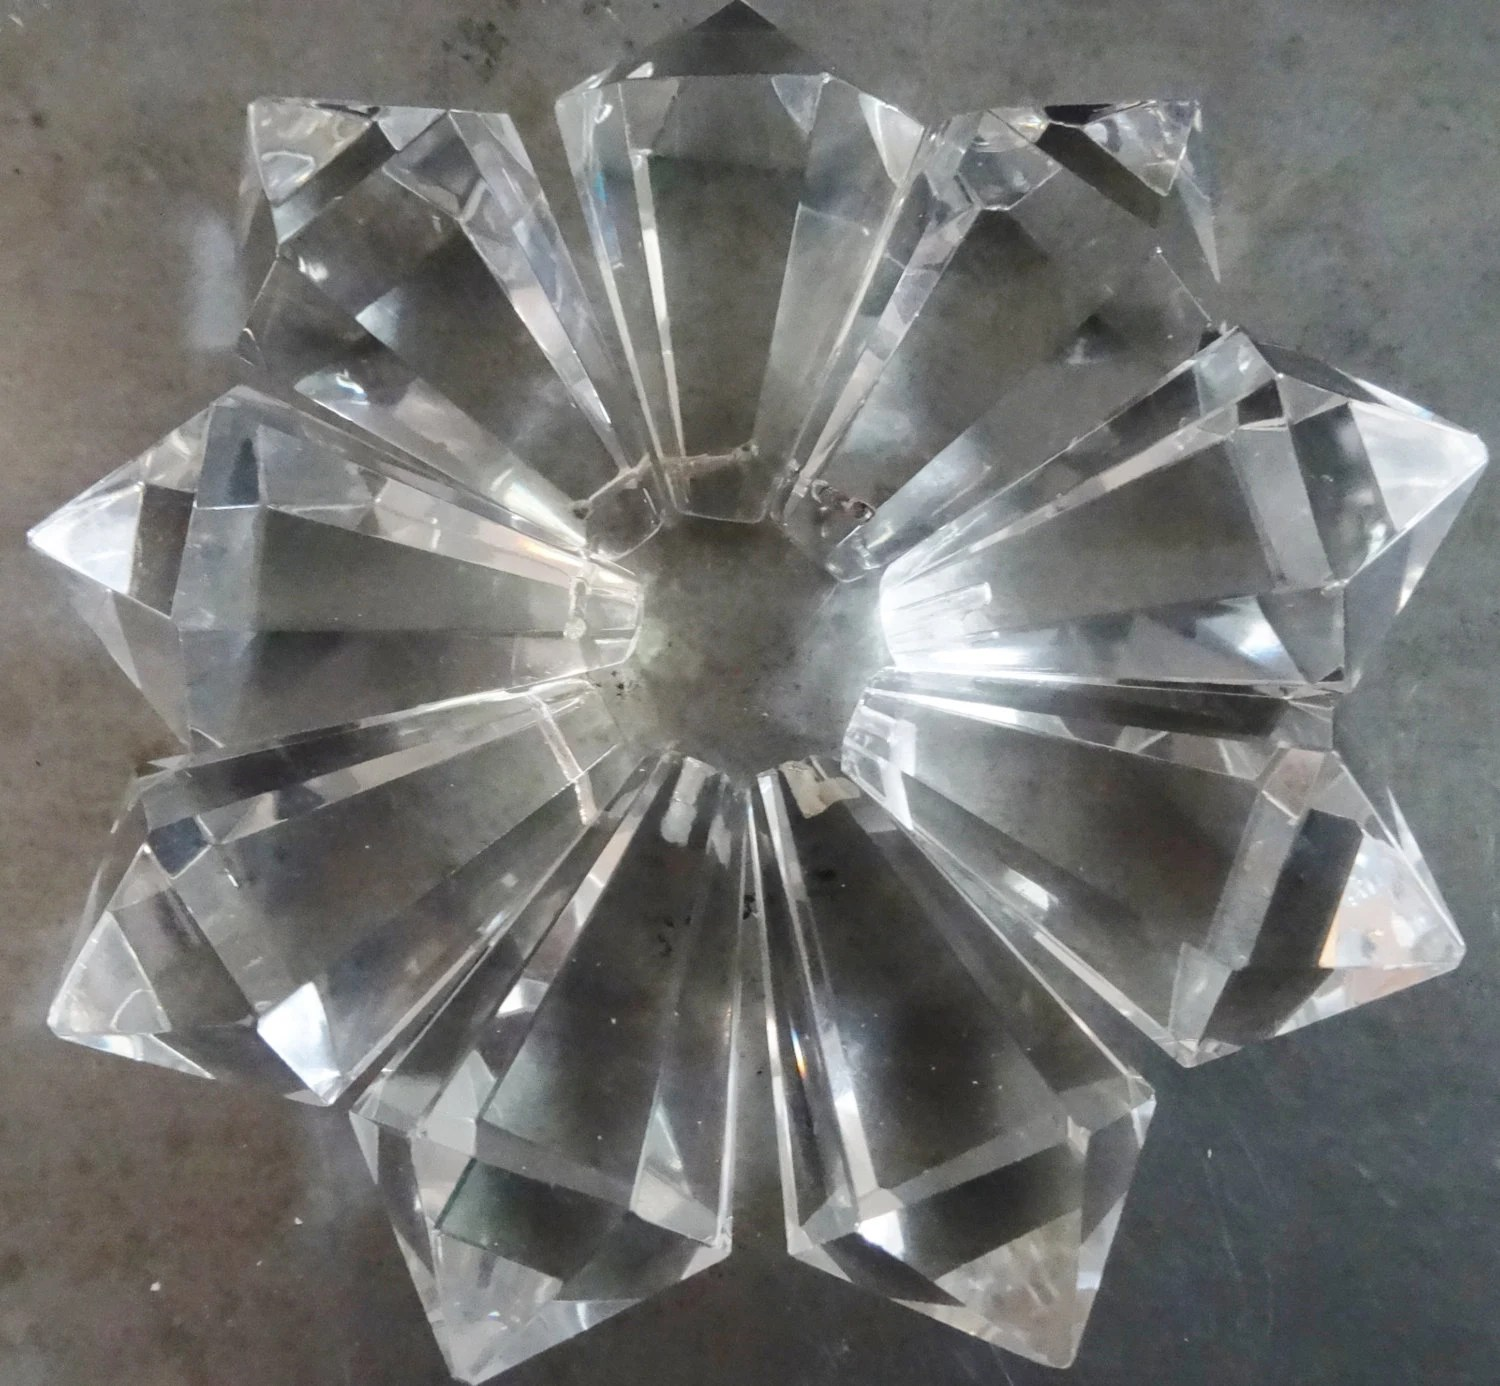 9 Crystal Prism Drop Cone Chandelier Lamp Pieces From